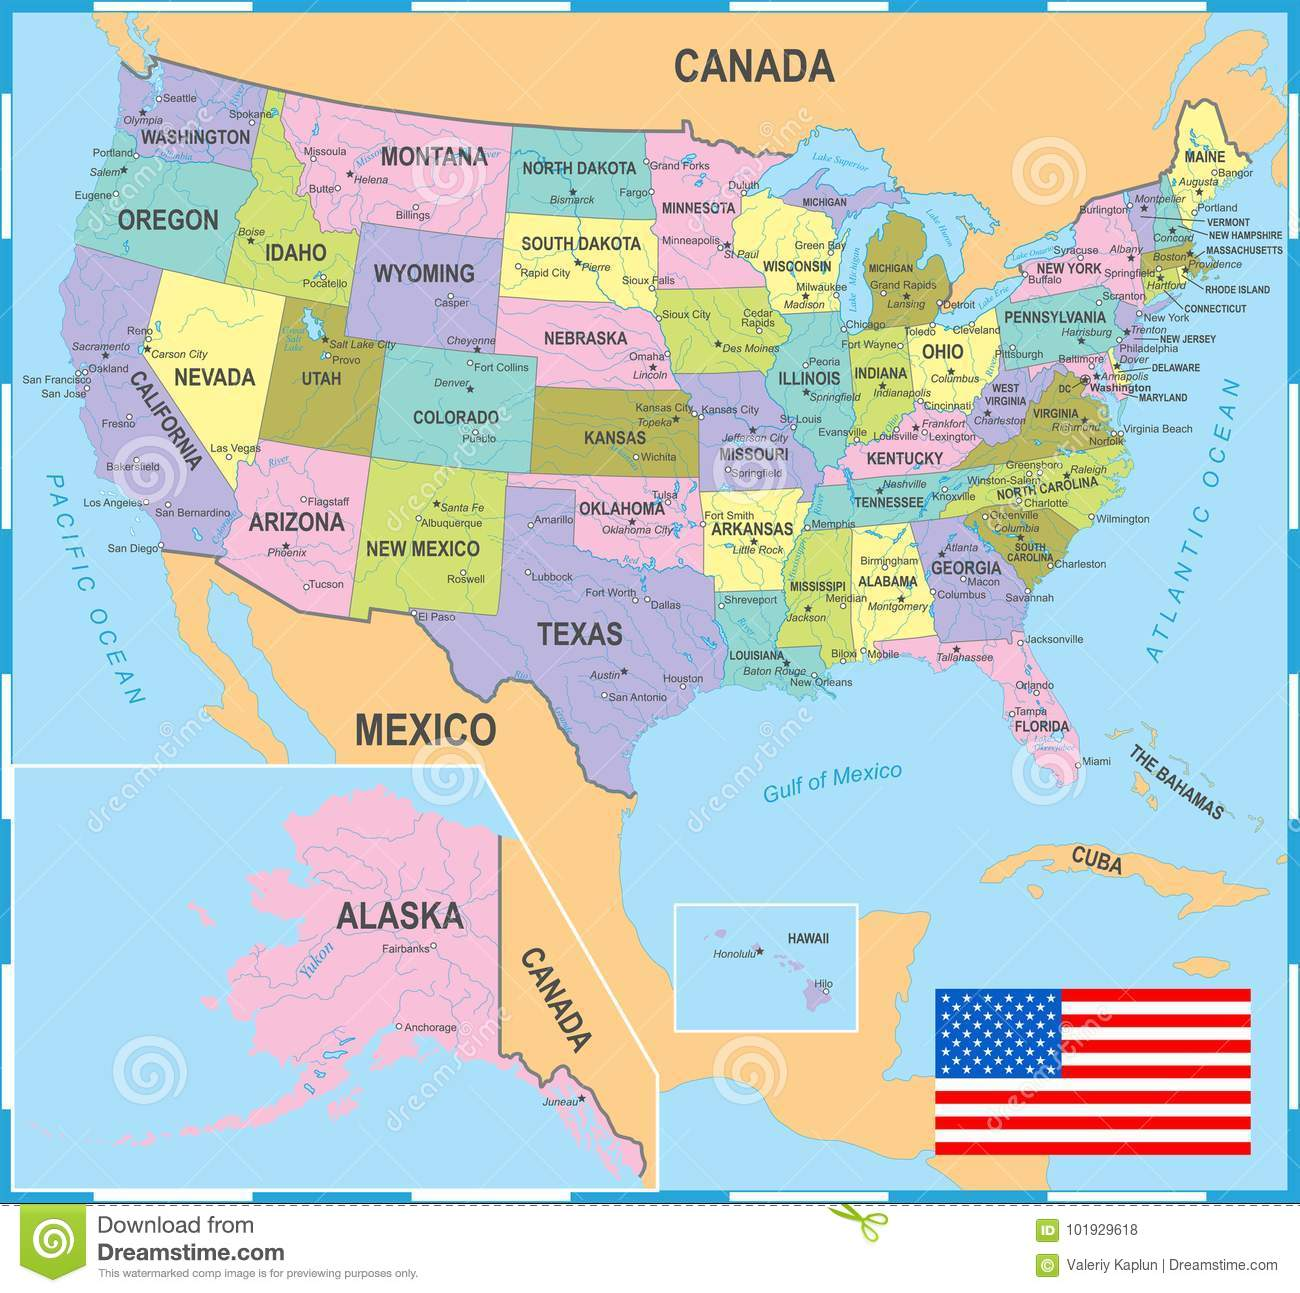 Colored Map Of Canada.United States Colored Map Vector Illustration Stock Illustration